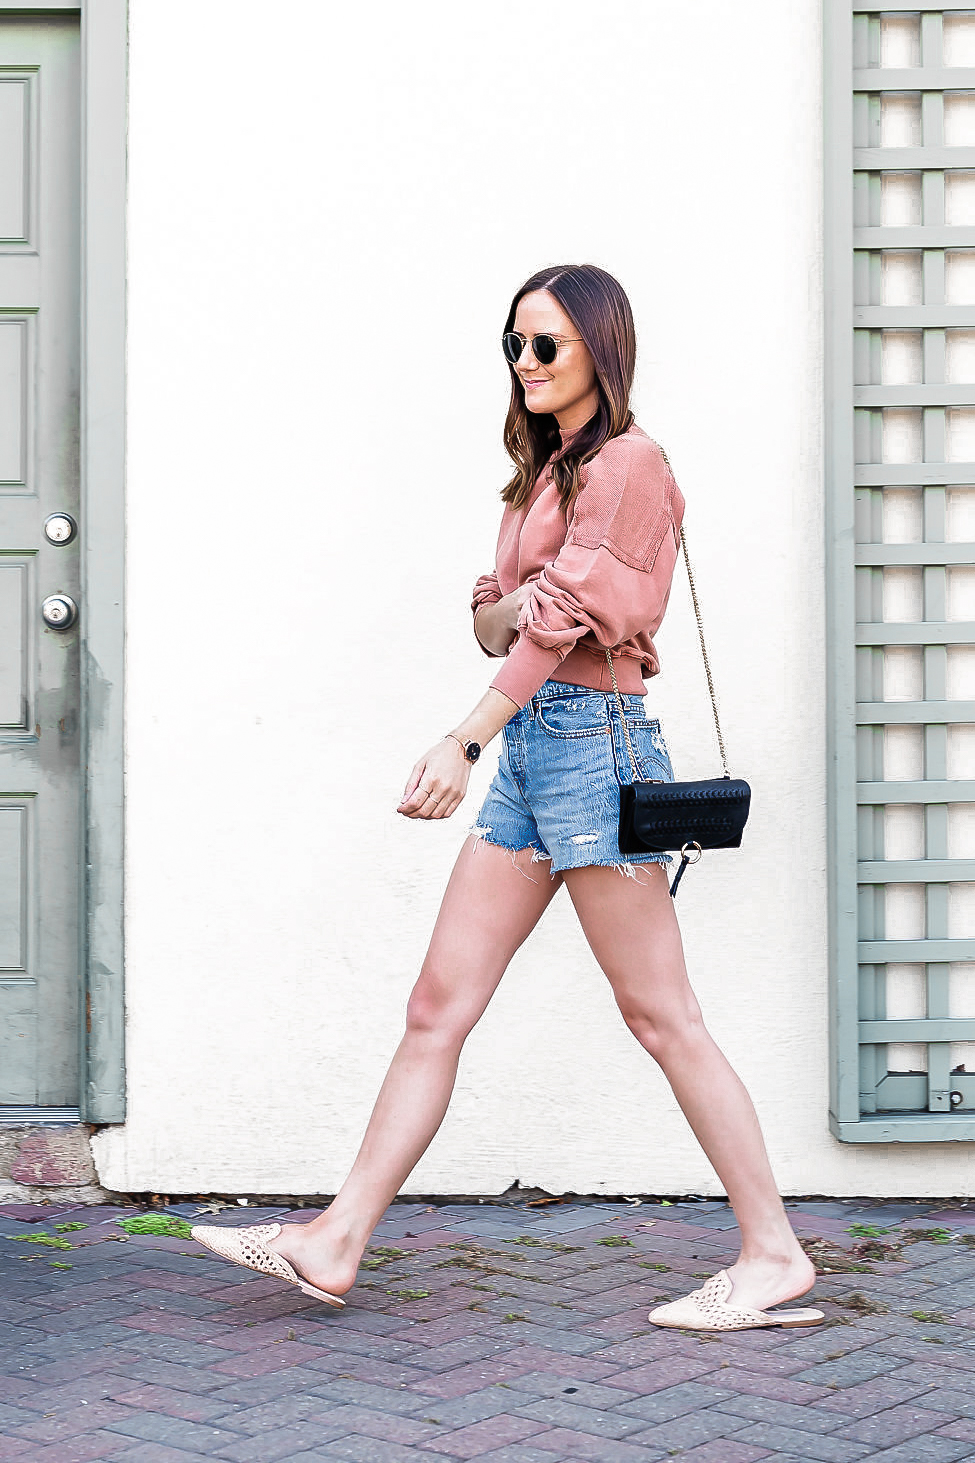 Shop the Look Below.  Free People Pullover  |  Levi's Shorts  |  Nordstrom Shoes  |  Free People Bag  |  Ray-Ban Sunglasses